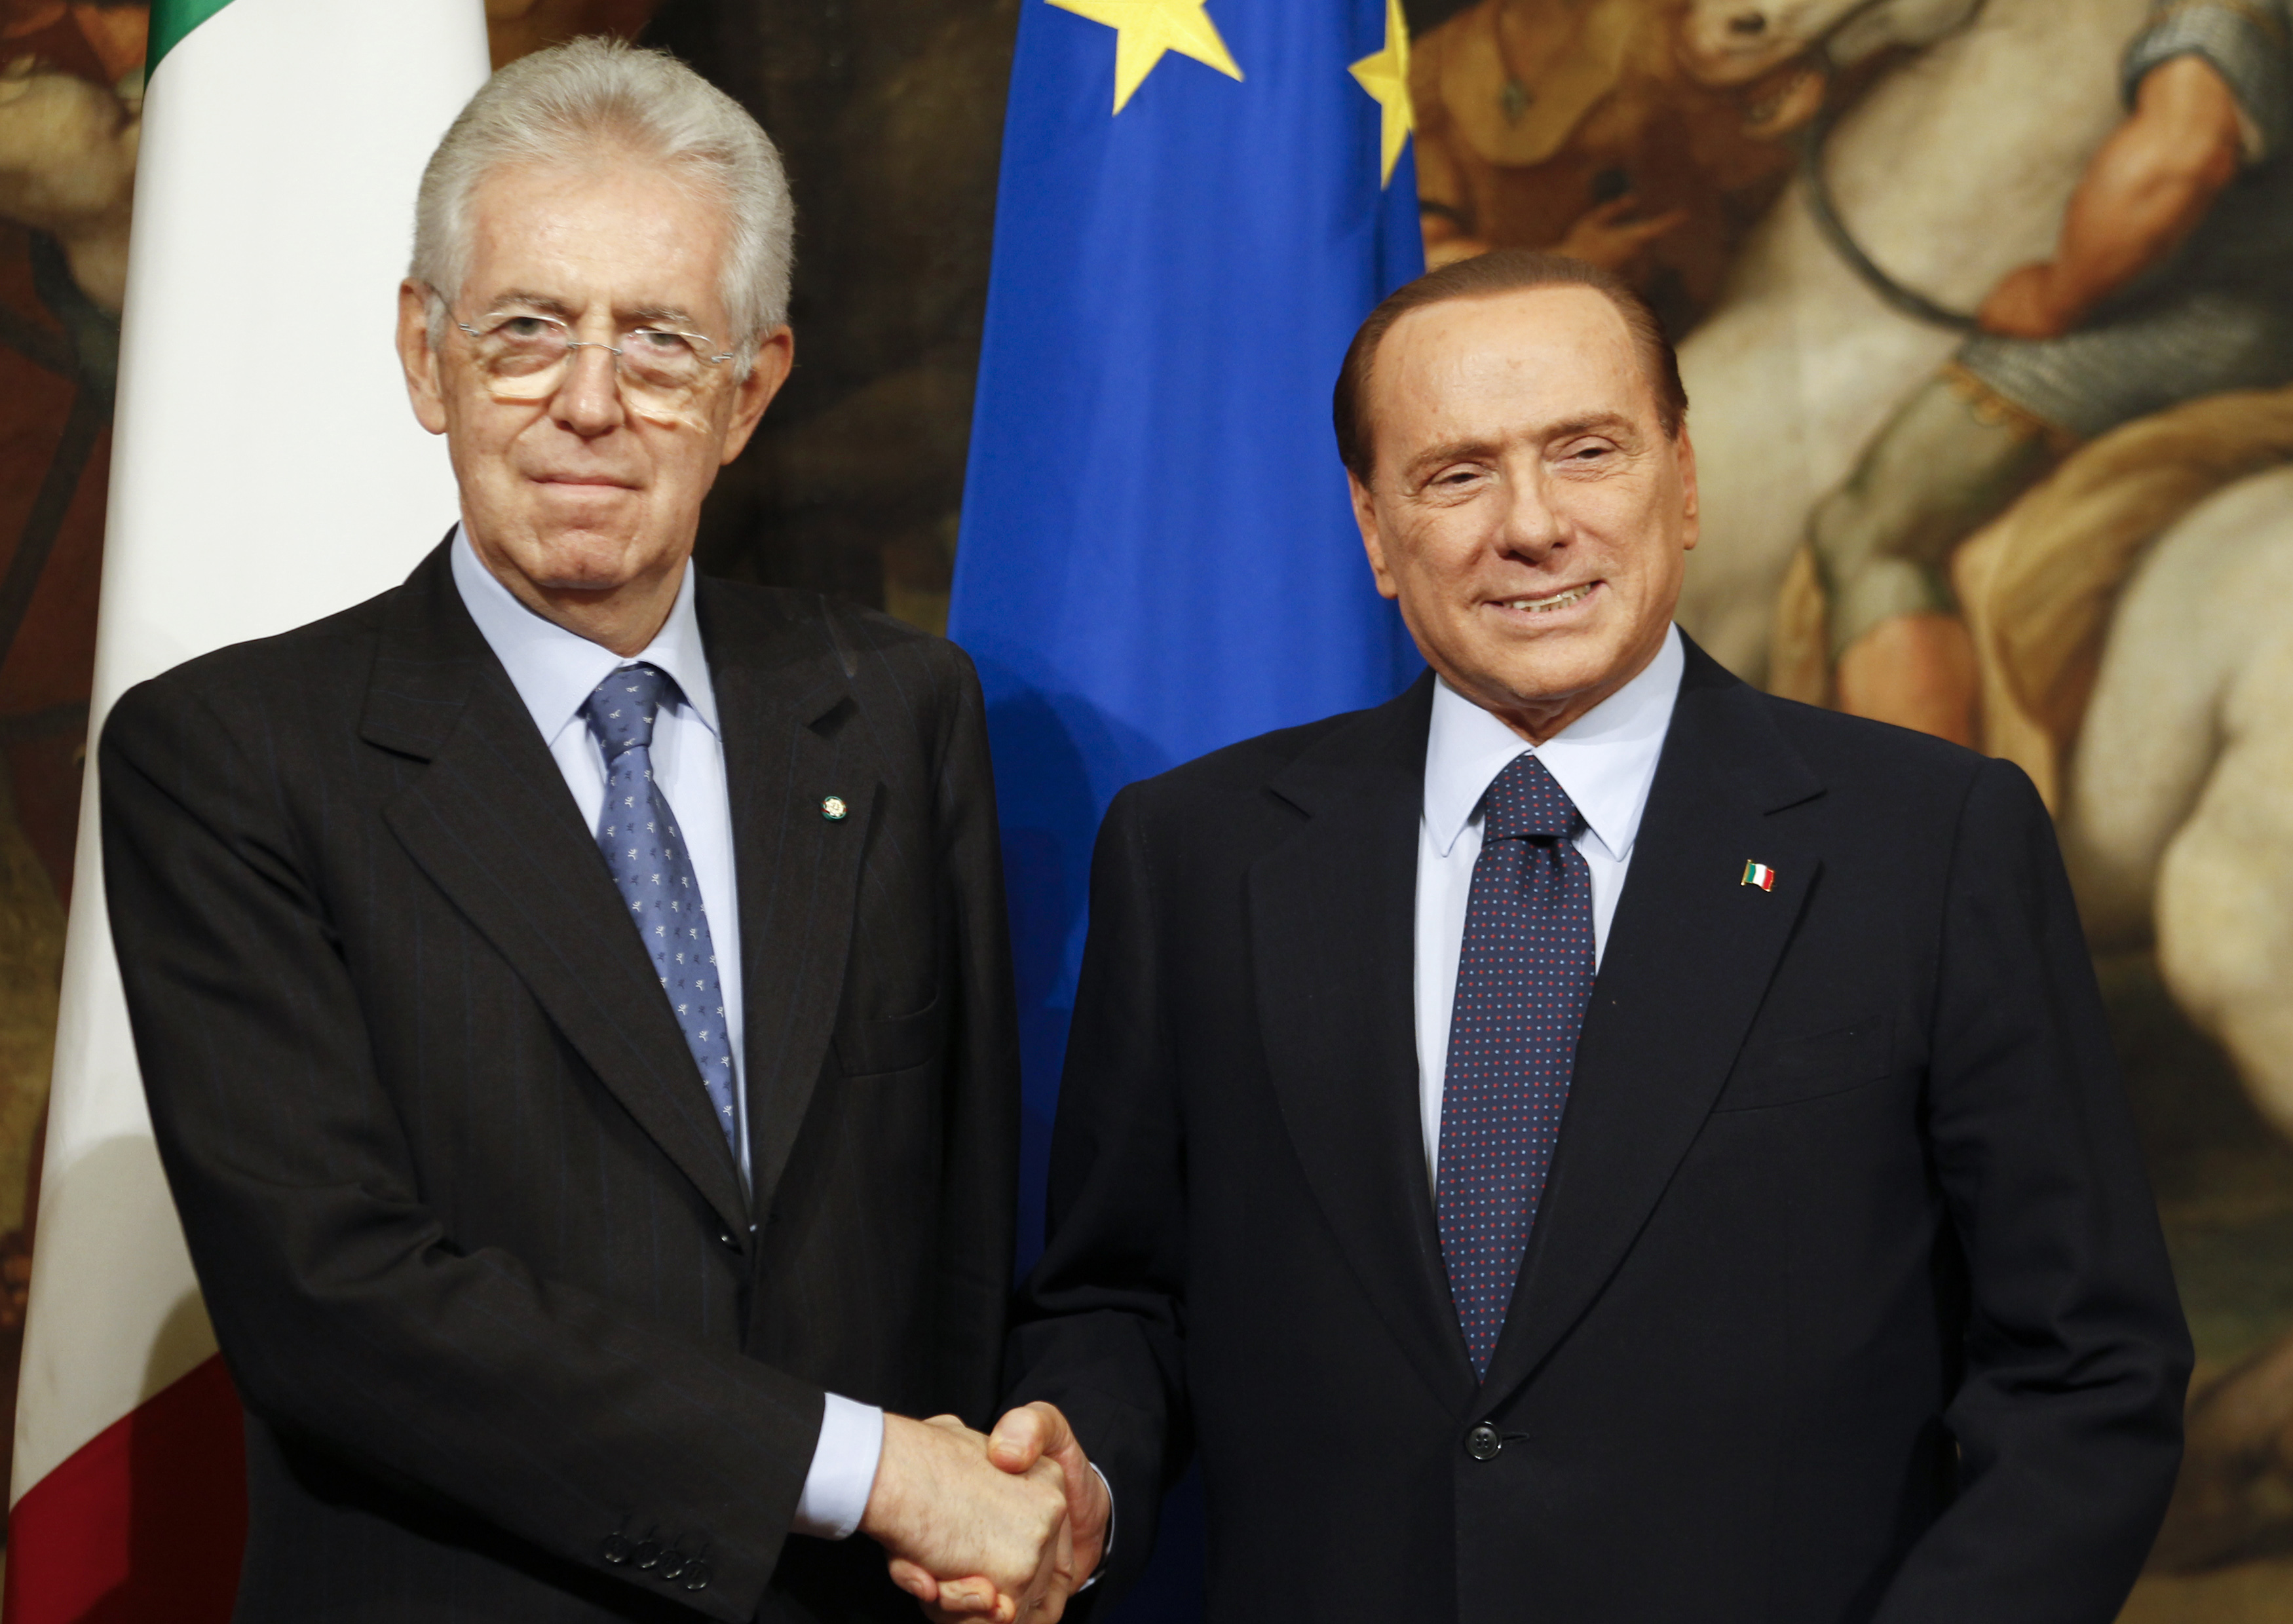 Newly appointed Italian Prime Minister Mario Monti (L) shakes hands with his predecessor Silvio Berlusconi at Chigi Palace in Rome November 16, 2011.